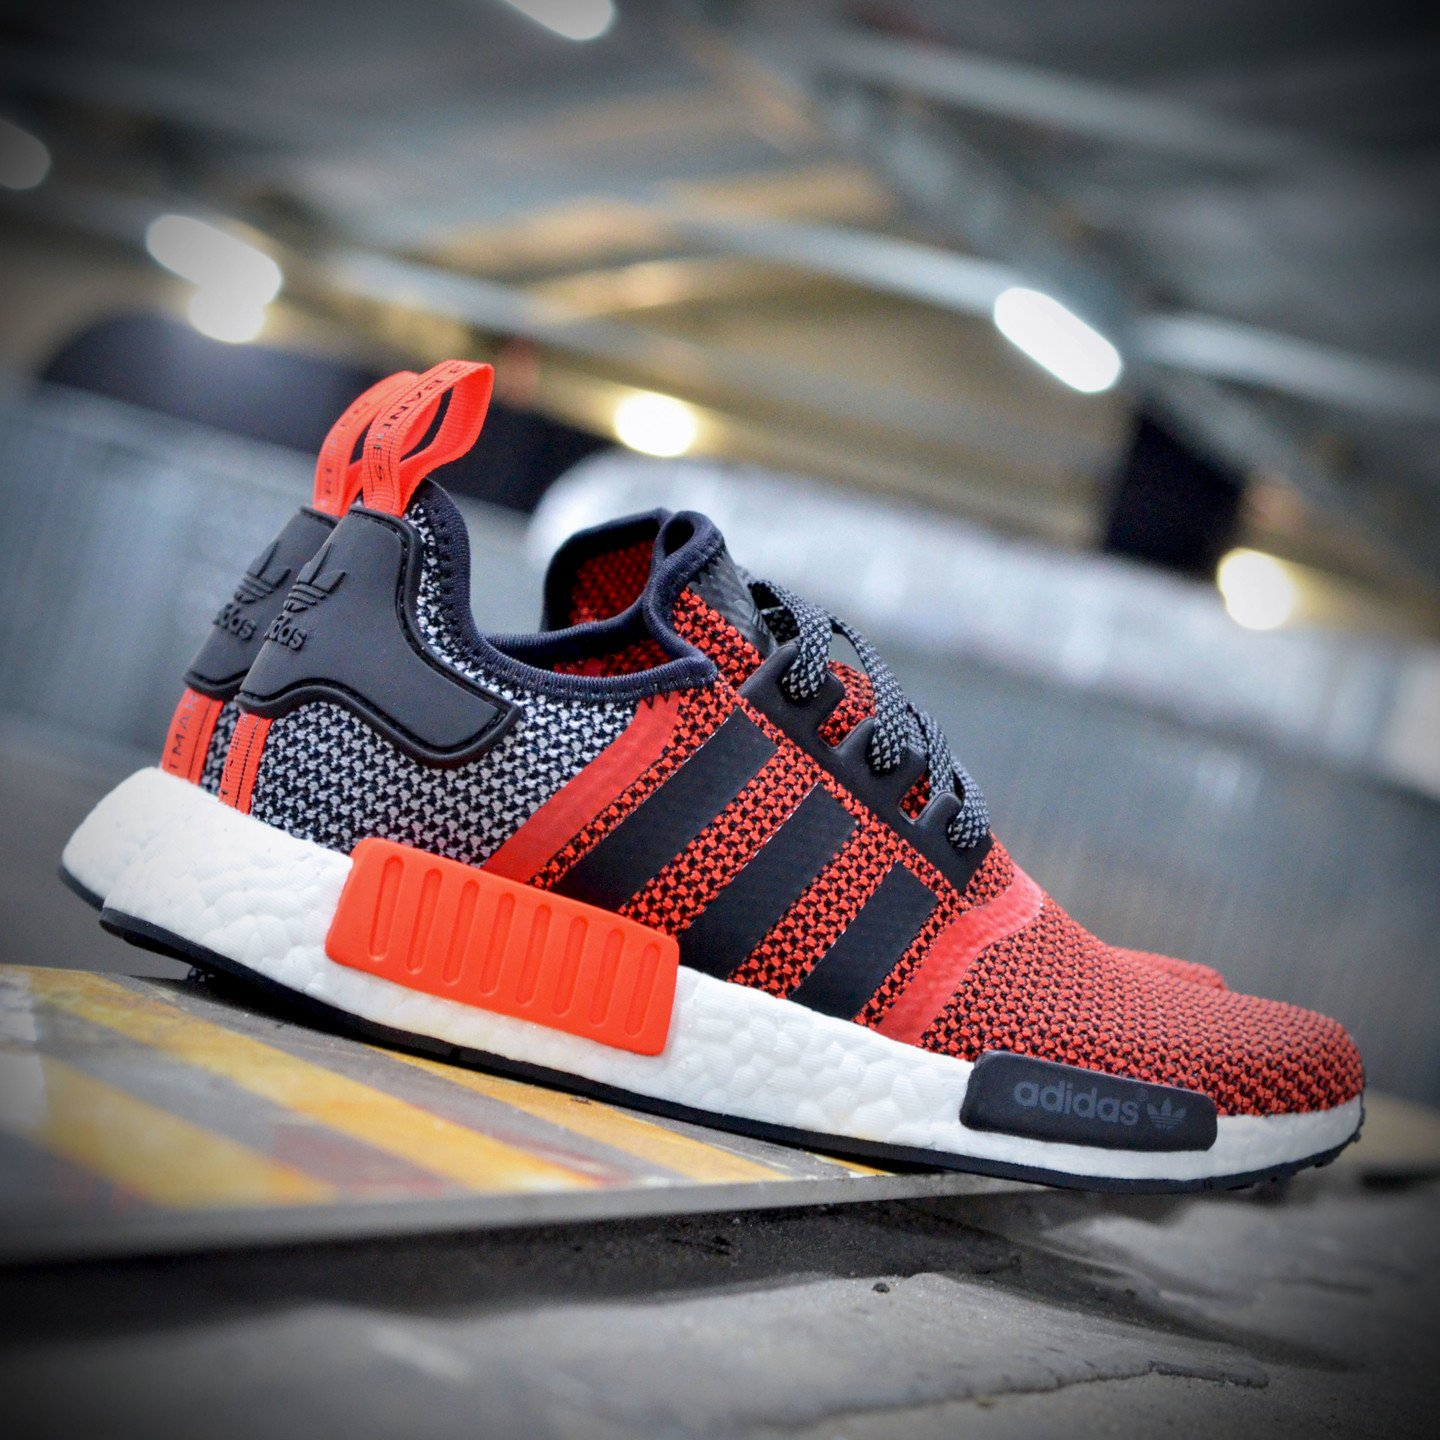 Adidas NMD R1 Runner Lush Red / Core Black S79158-37.33